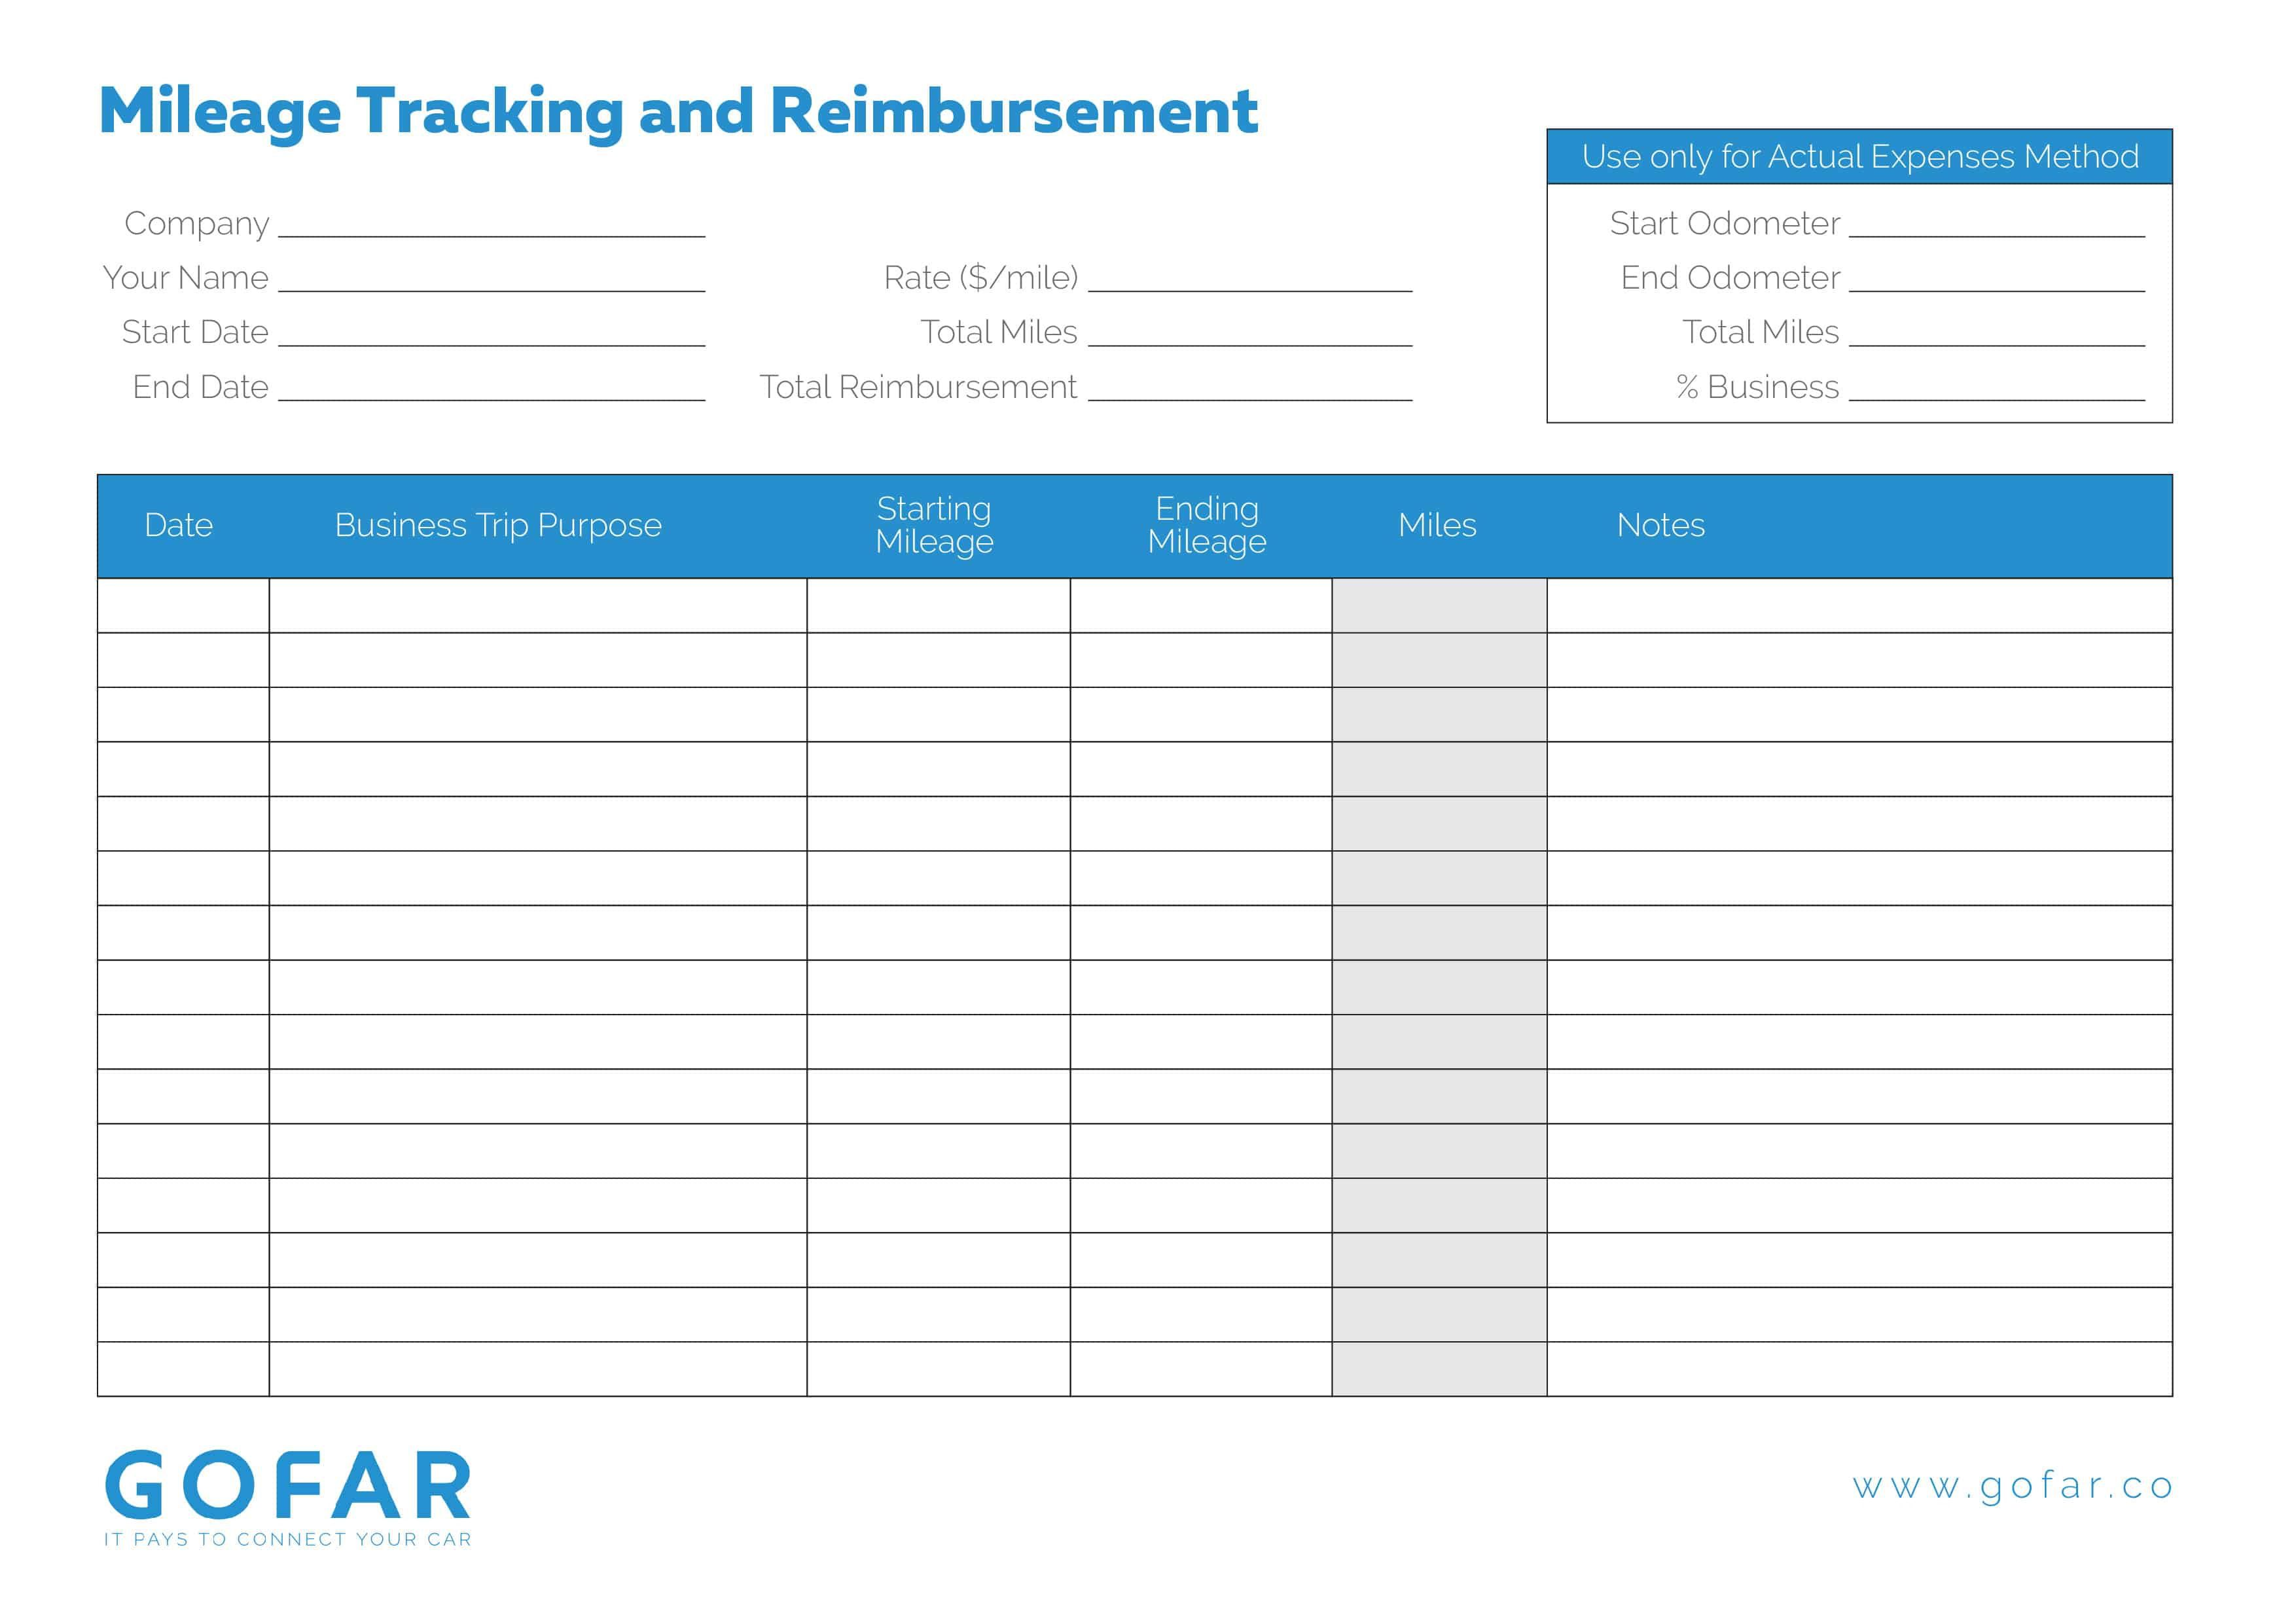 002 Incredible Mileage Tracking Excel Template Idea Full